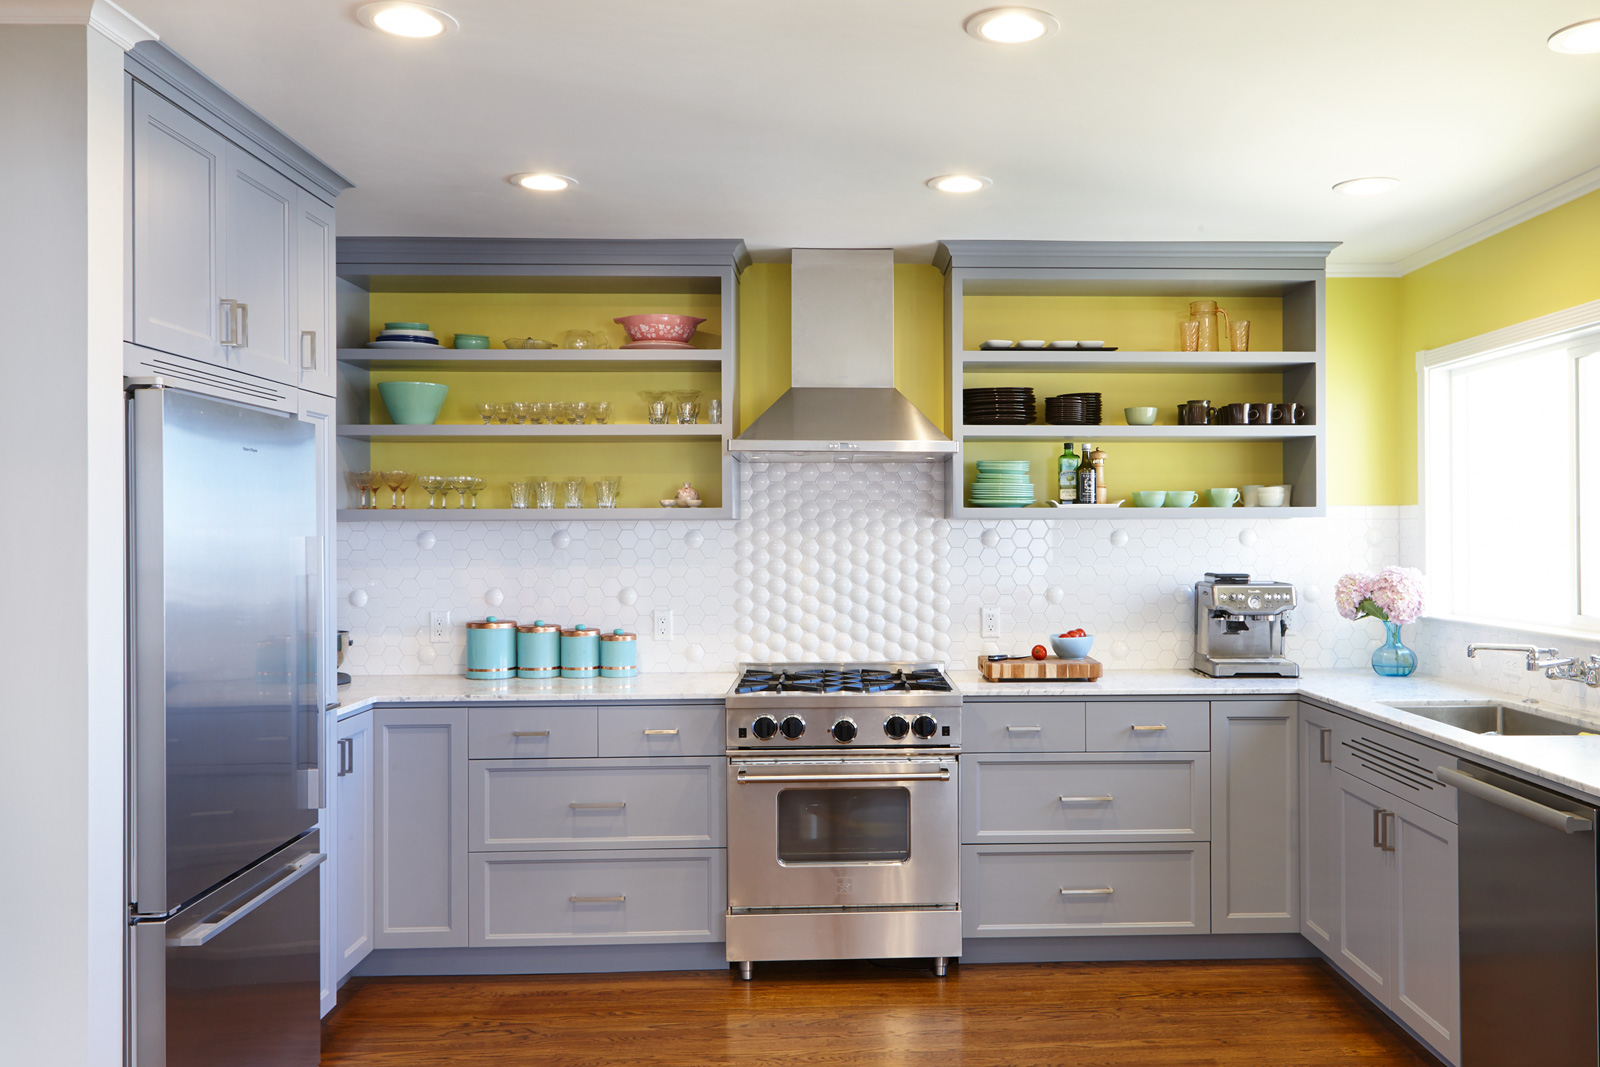 Best Colors to Use for Kitchen Cabinets - Style Motivation